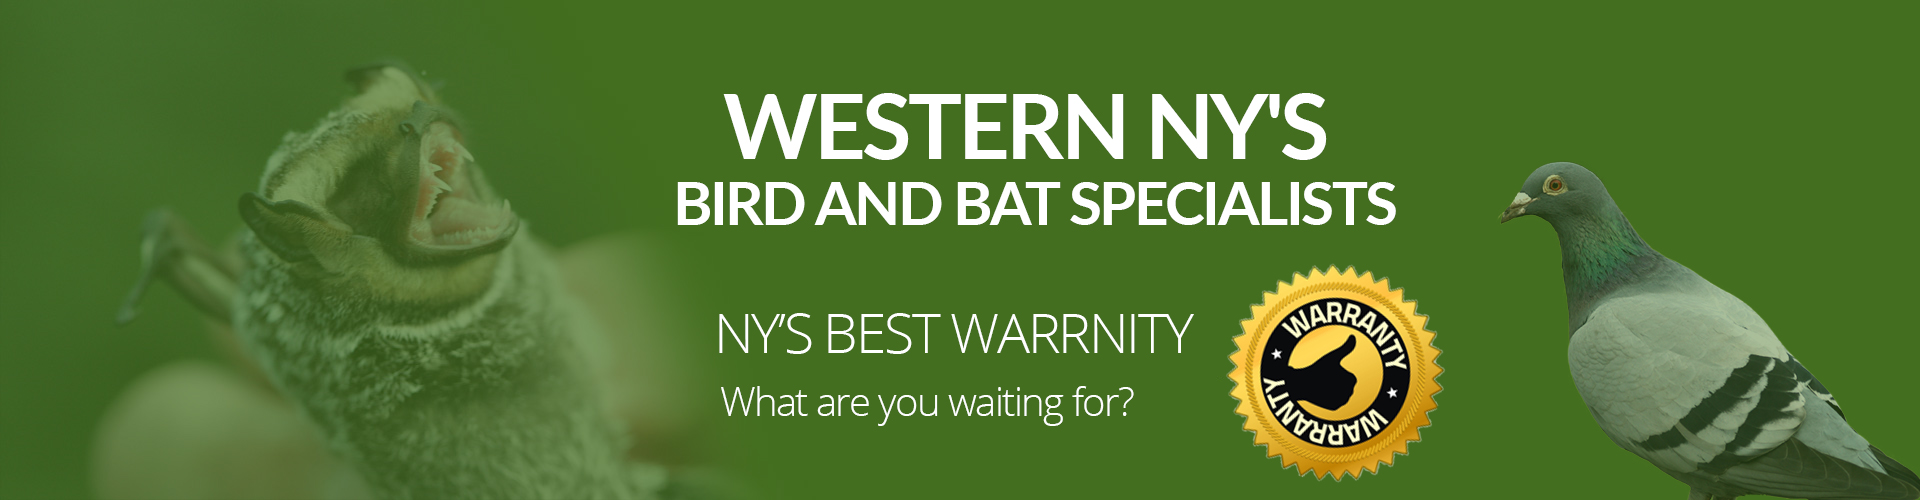 Western New York's Bird and Bat Specialists